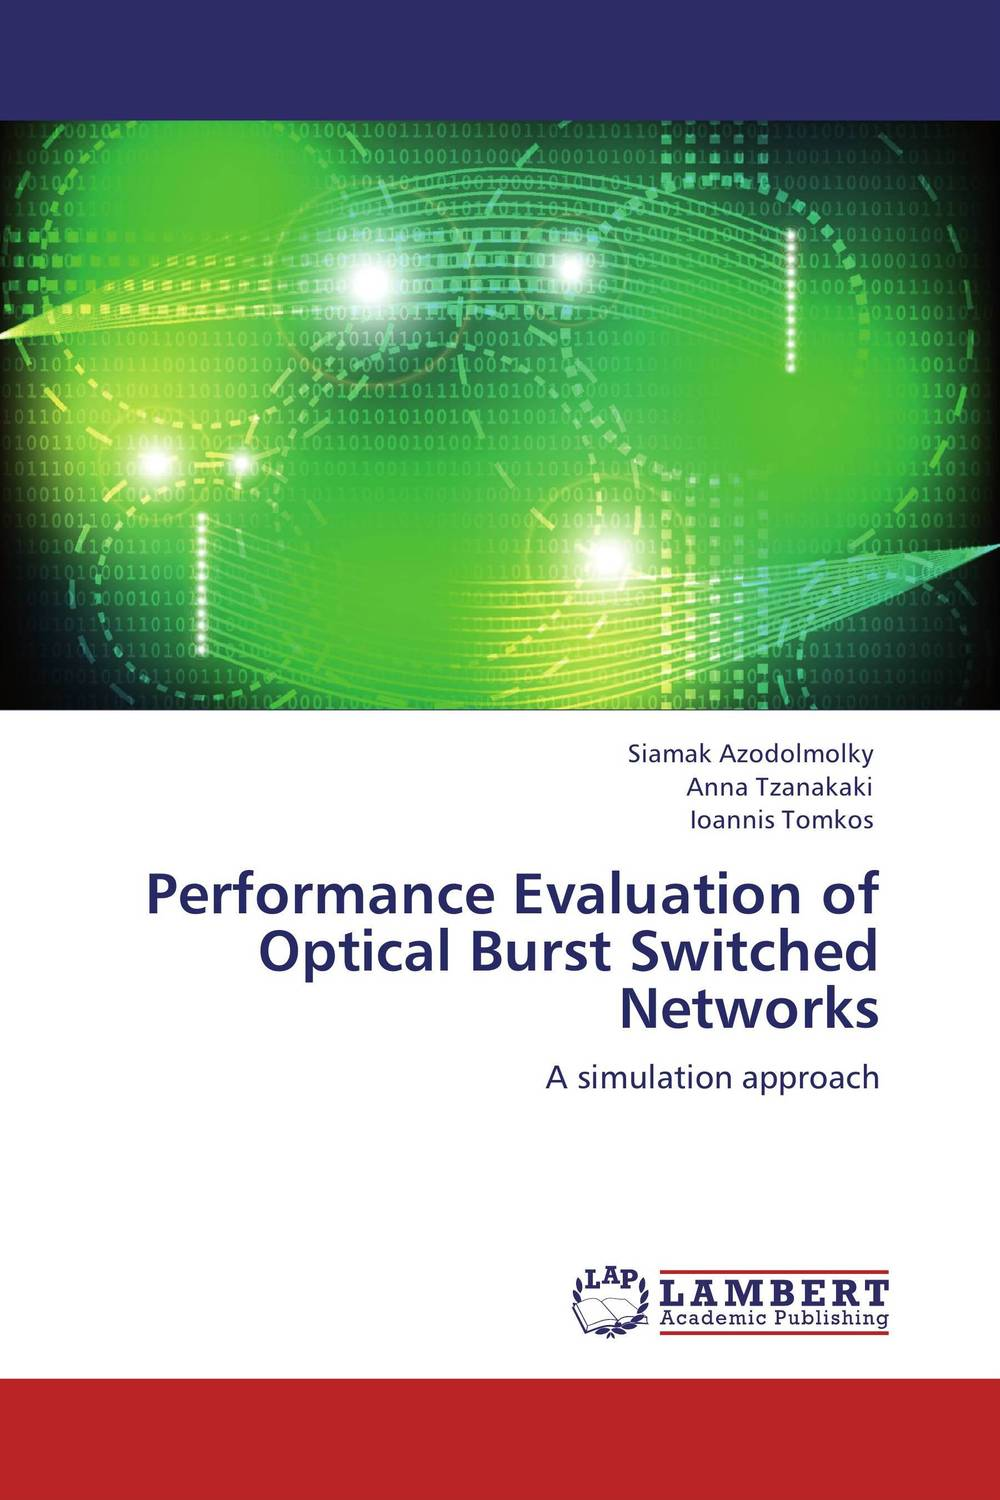 Performance Evaluation of Optical Burst Switched Networks